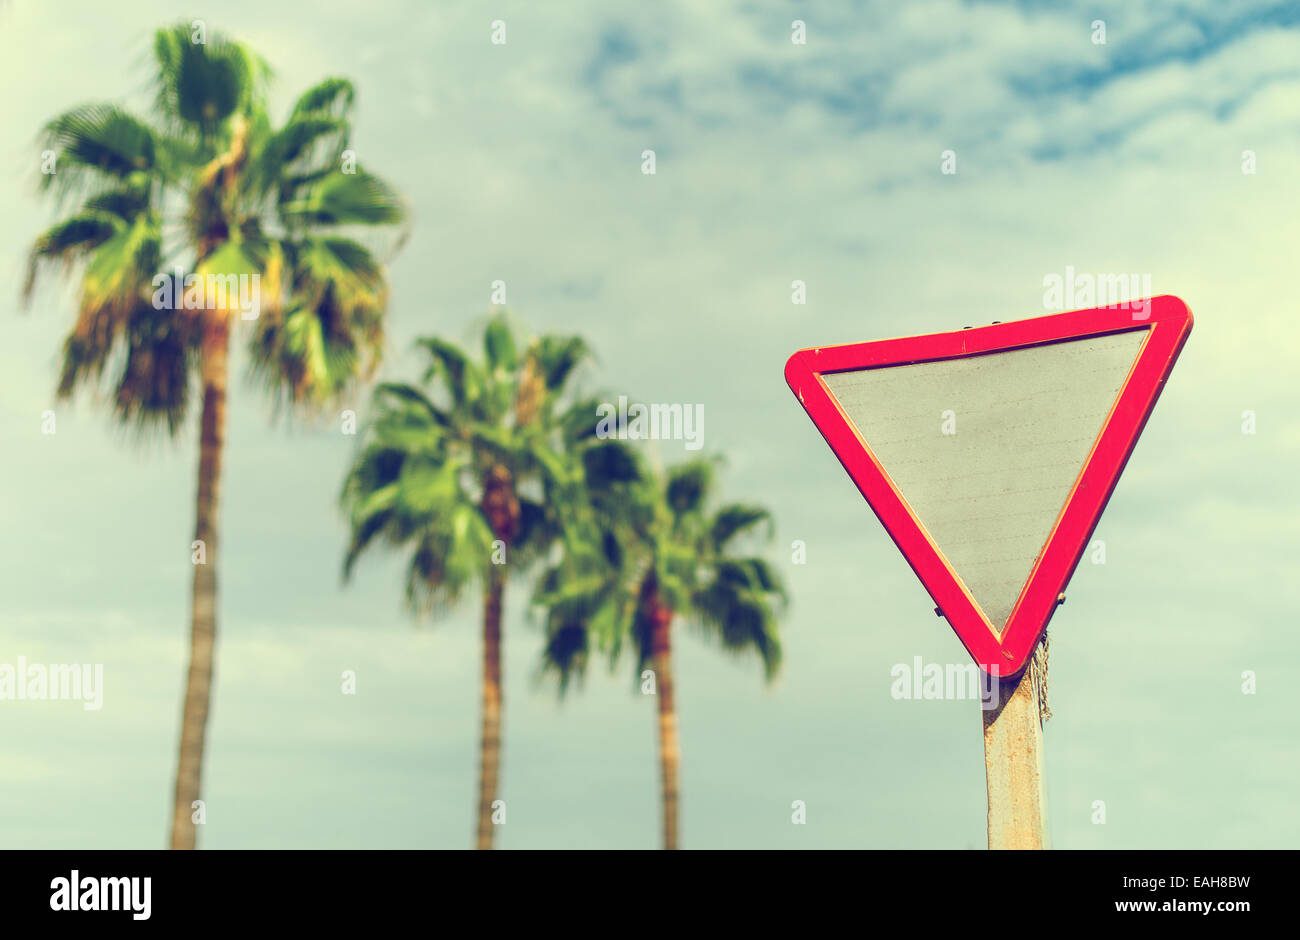 Give way' sign against palms and sky. Stock Photo